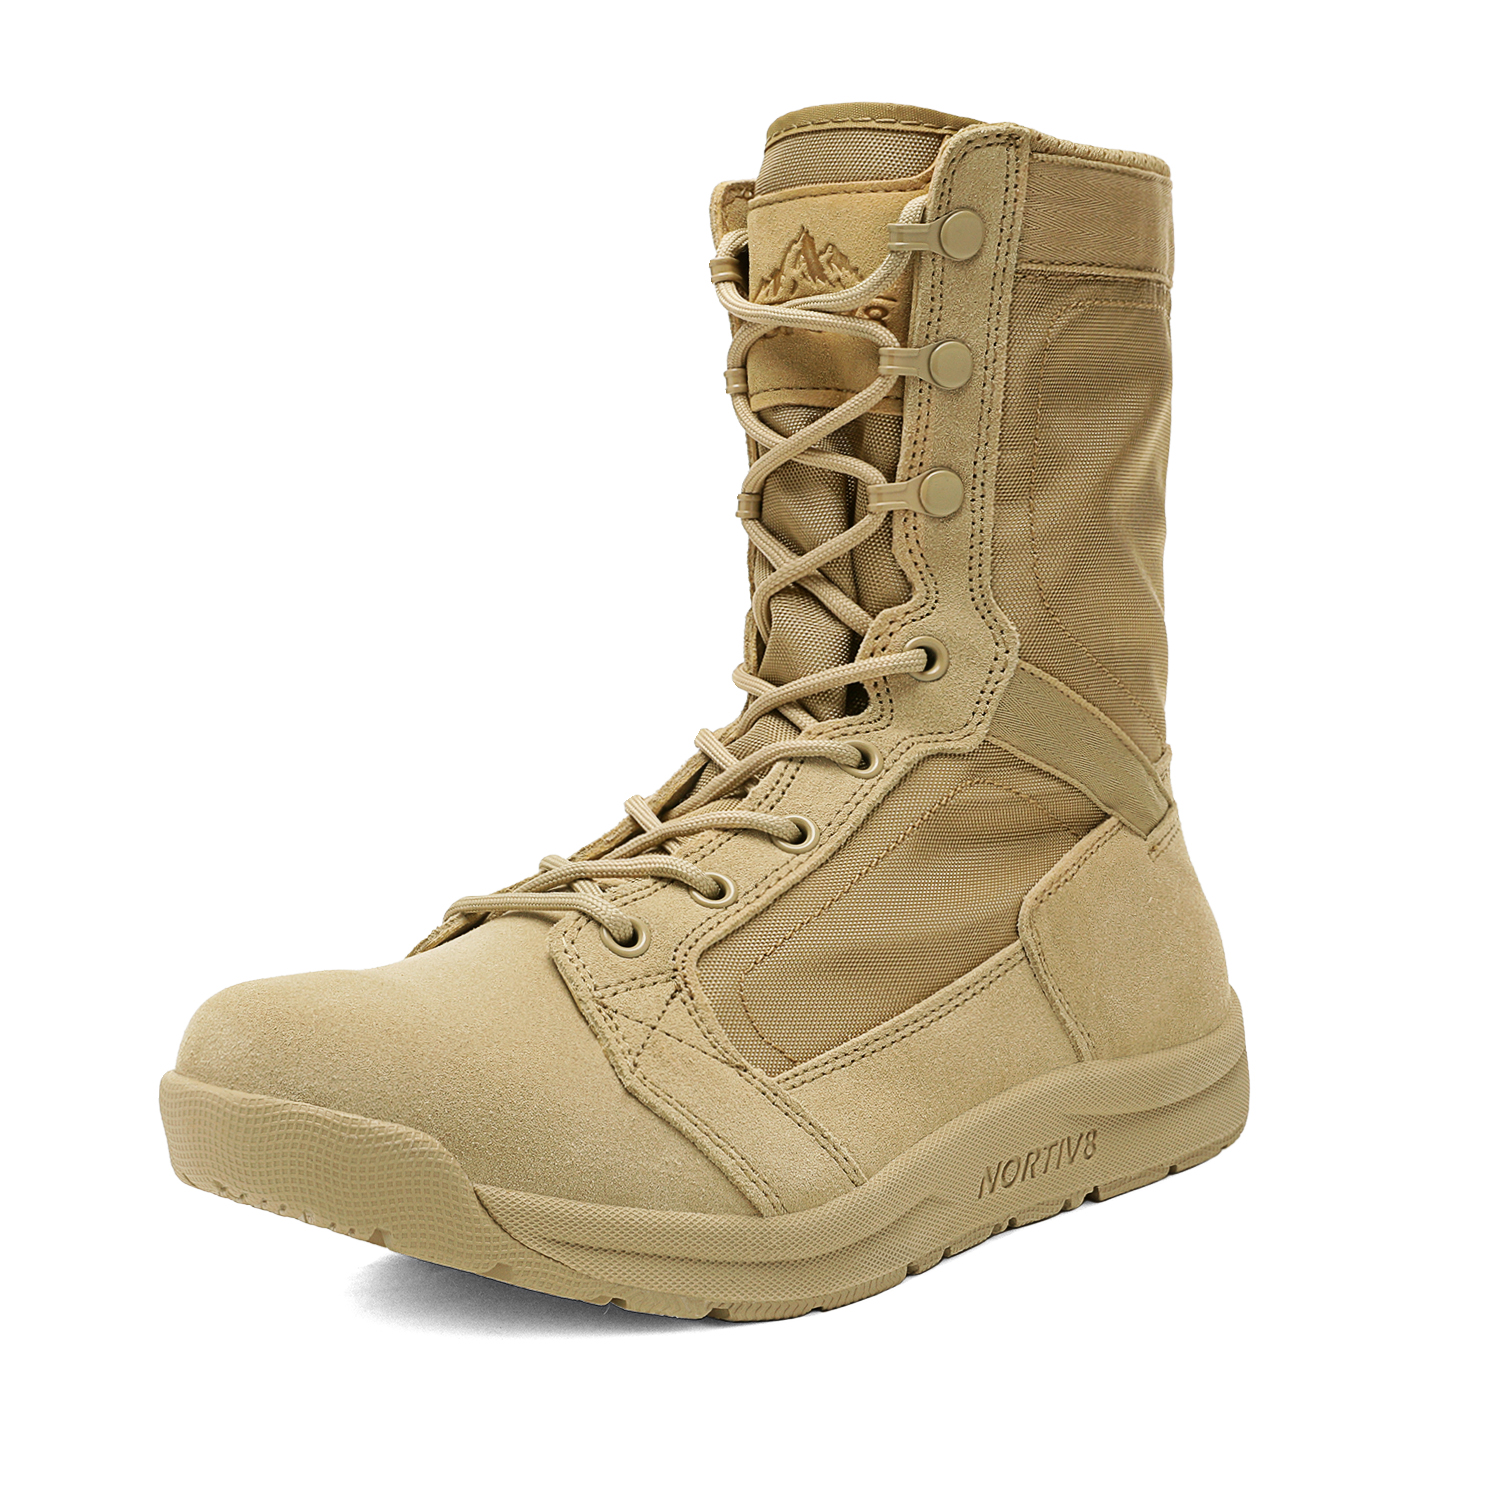 NORTIV 8 Men/'s Military Tactical Combat Boots Army Hiking Lightweight Work Boots